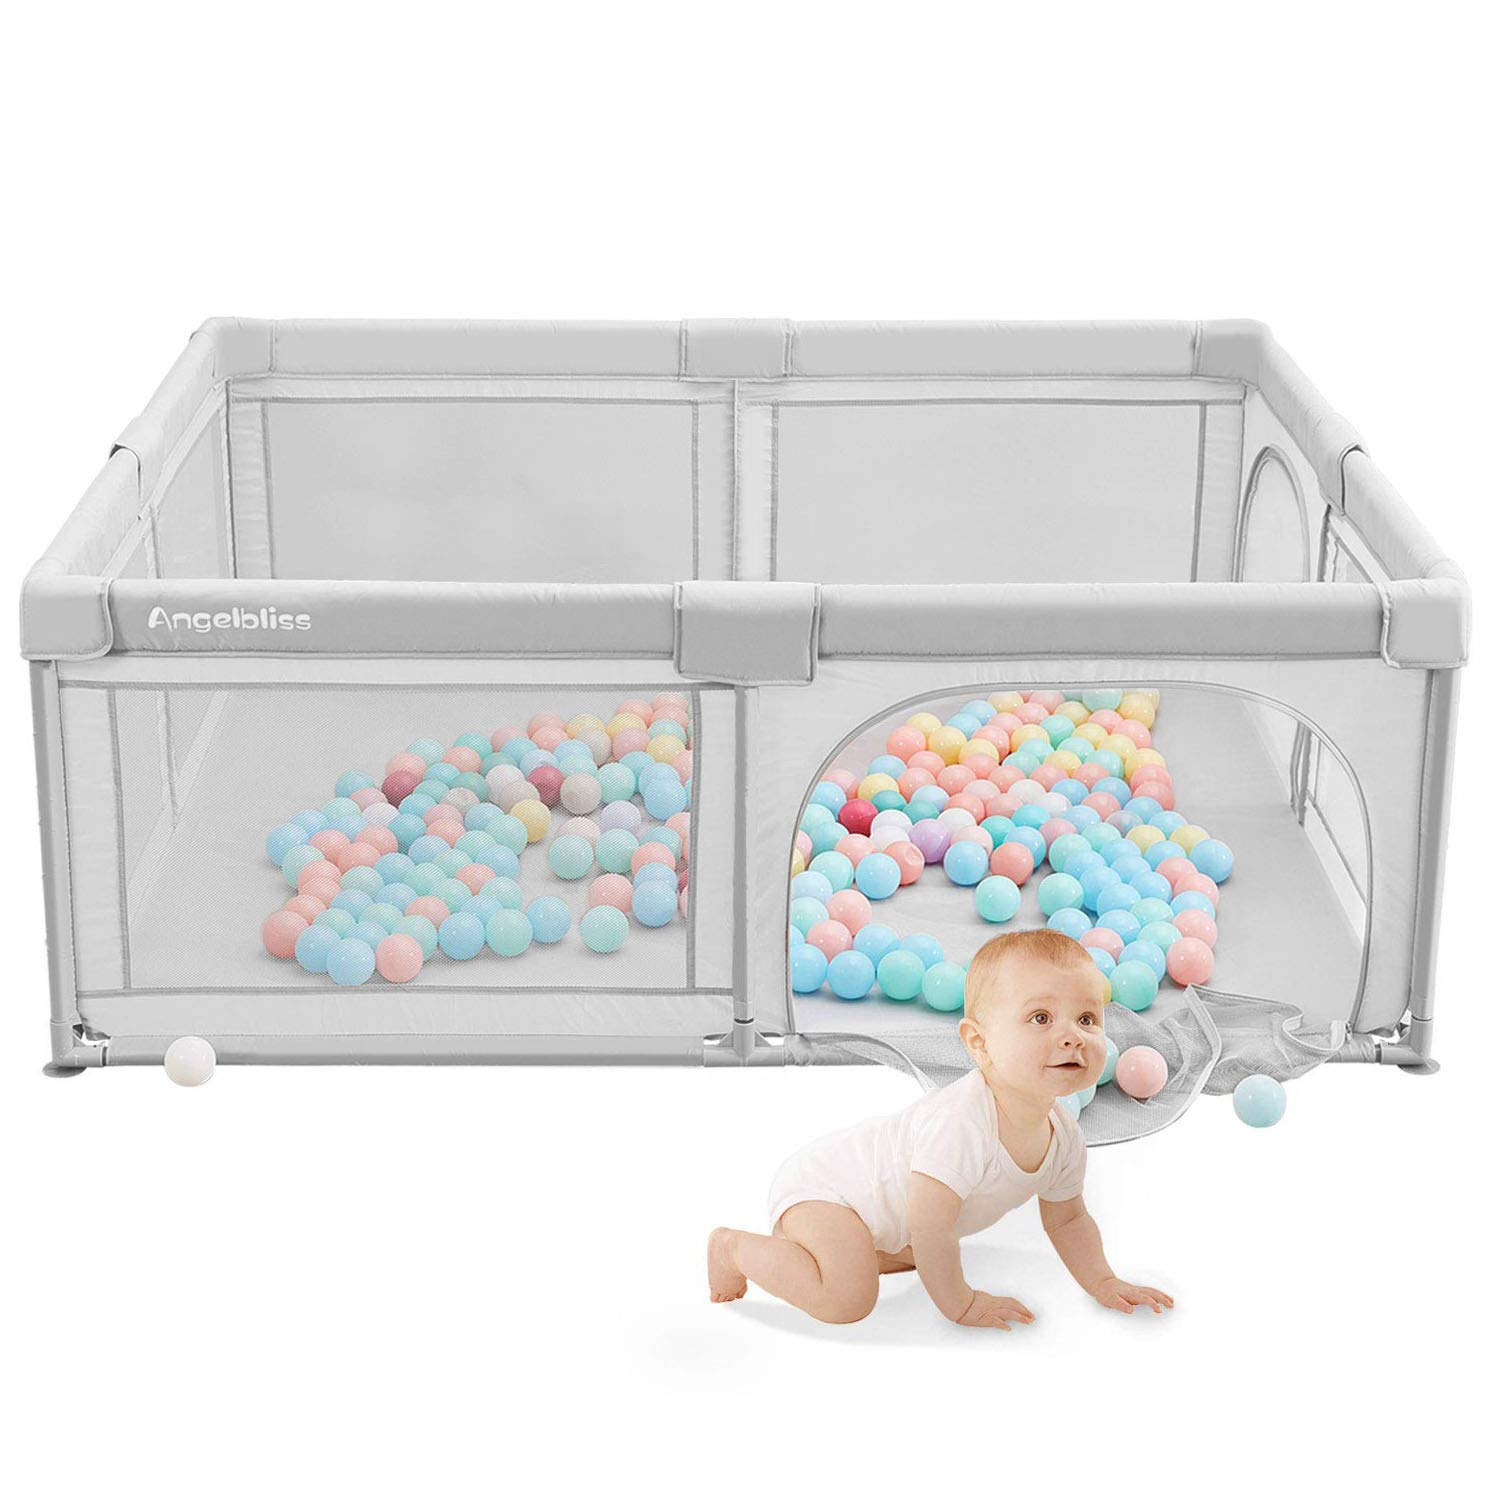 ANGELBLISS Baby playpen, Playpens for Babies, Kids Safety Play Center Yard Portable Playard Play Pen with gate for Infants and Babies,Extra Large Playard, Indoor and Outdoor, Anti-Fall Playpen(Gray)